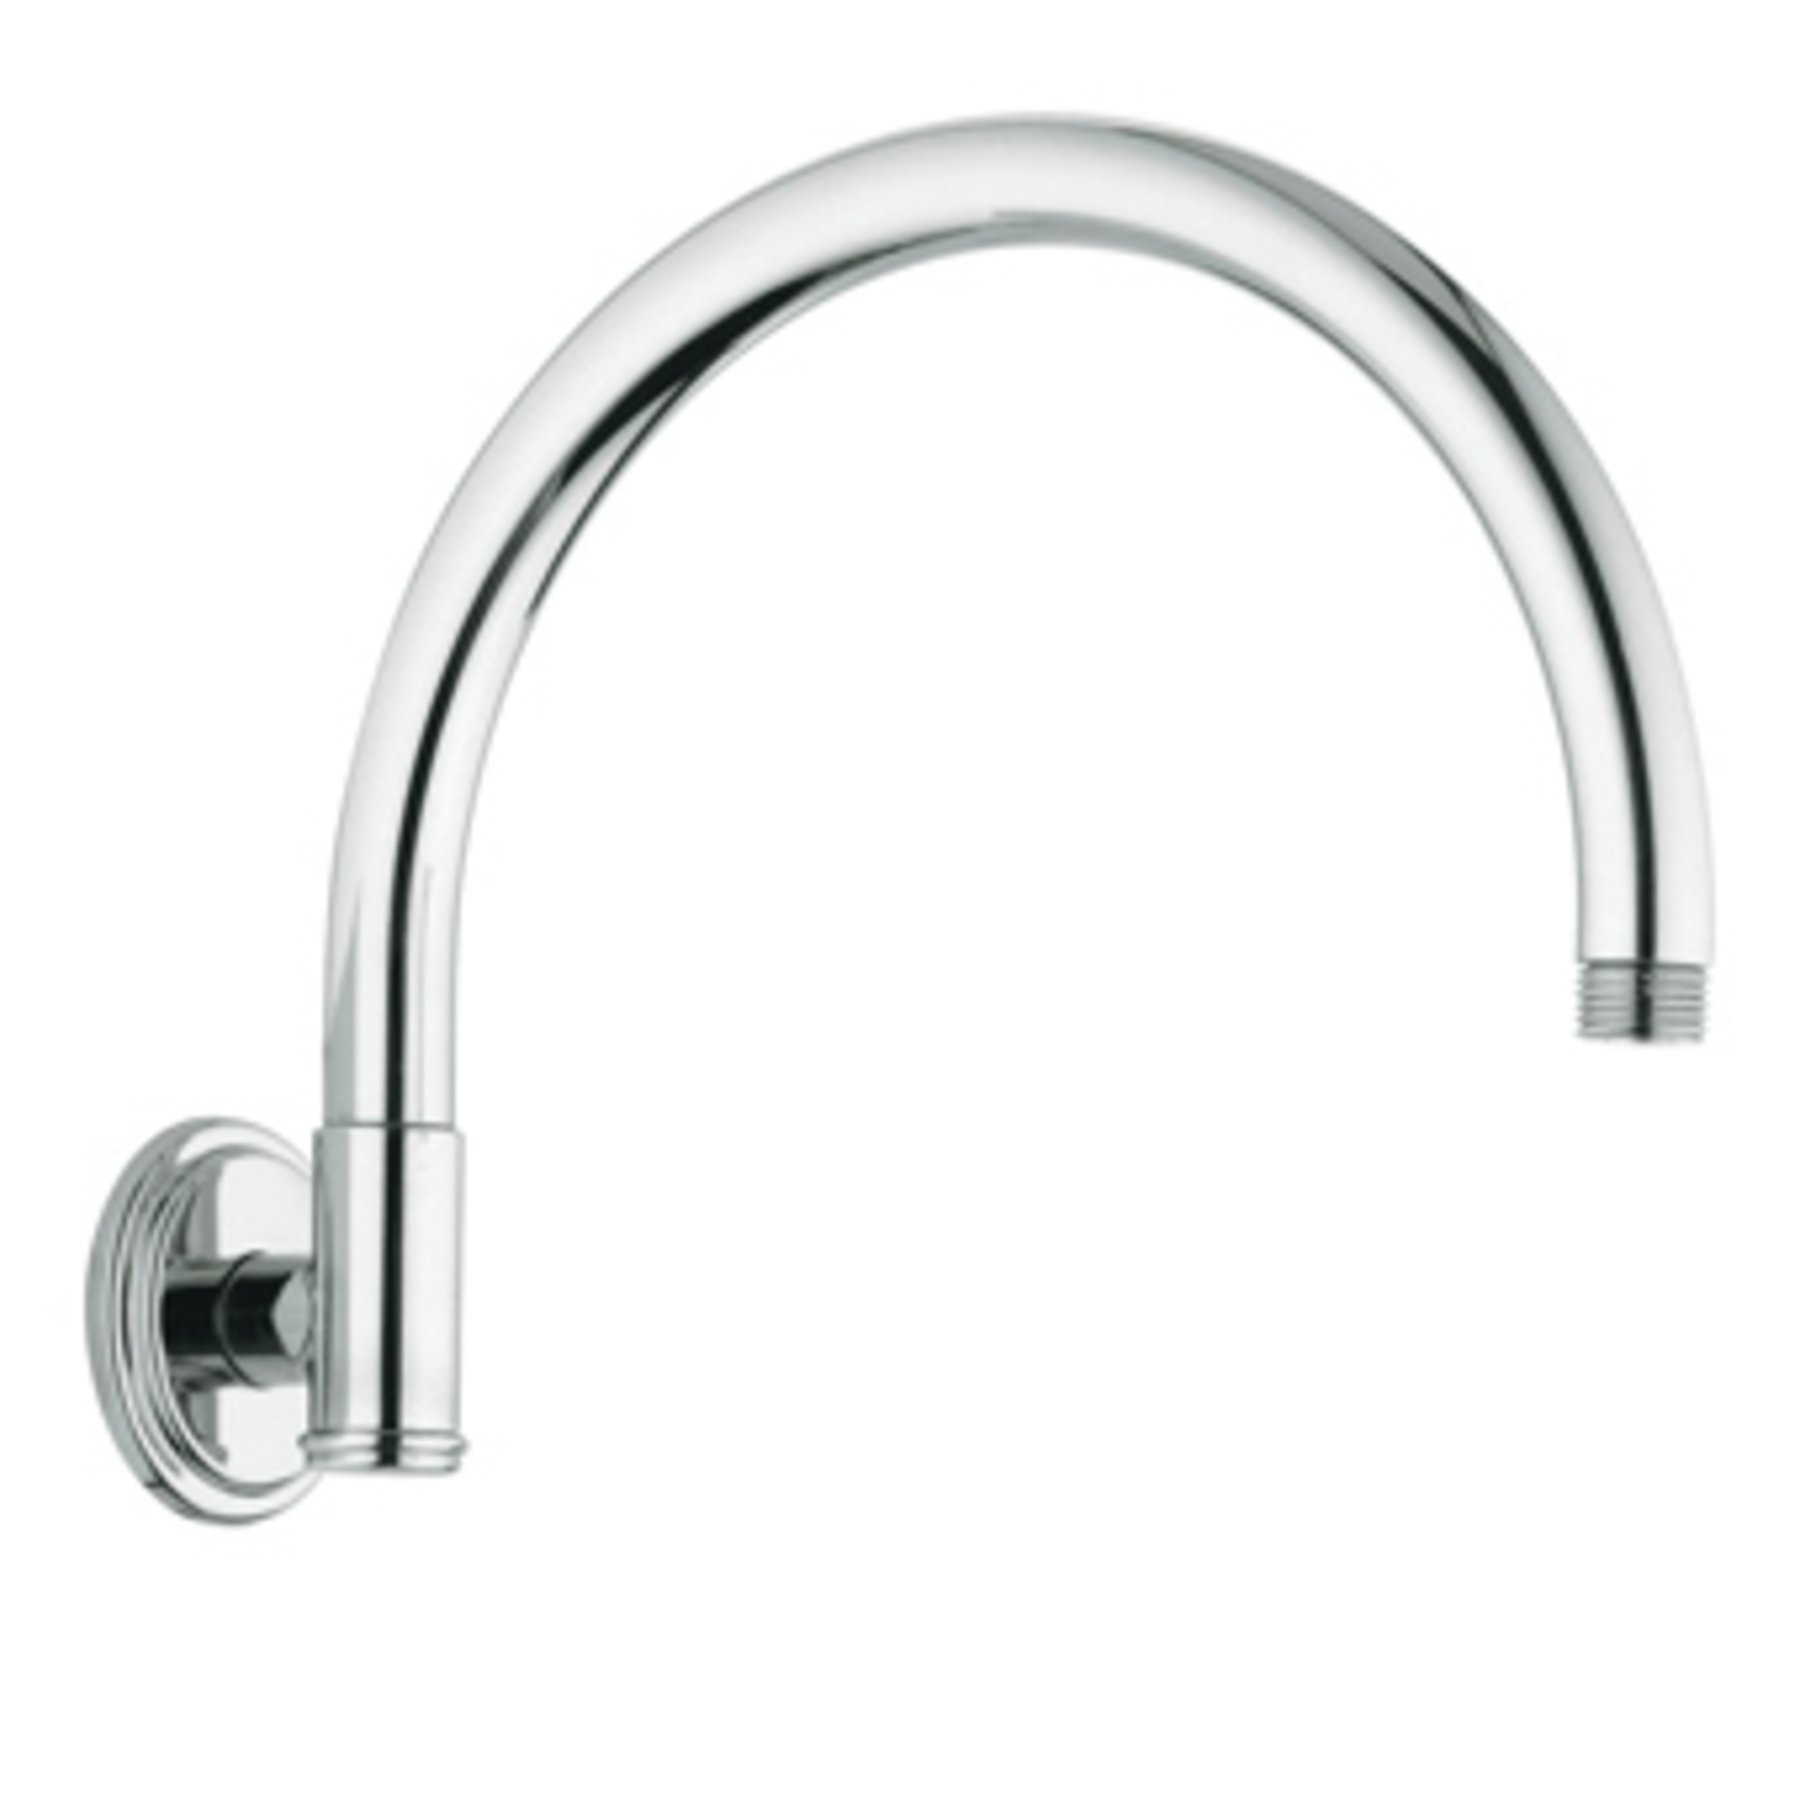 Grohe Rainshower douchearm Retro 27.2cm chroom